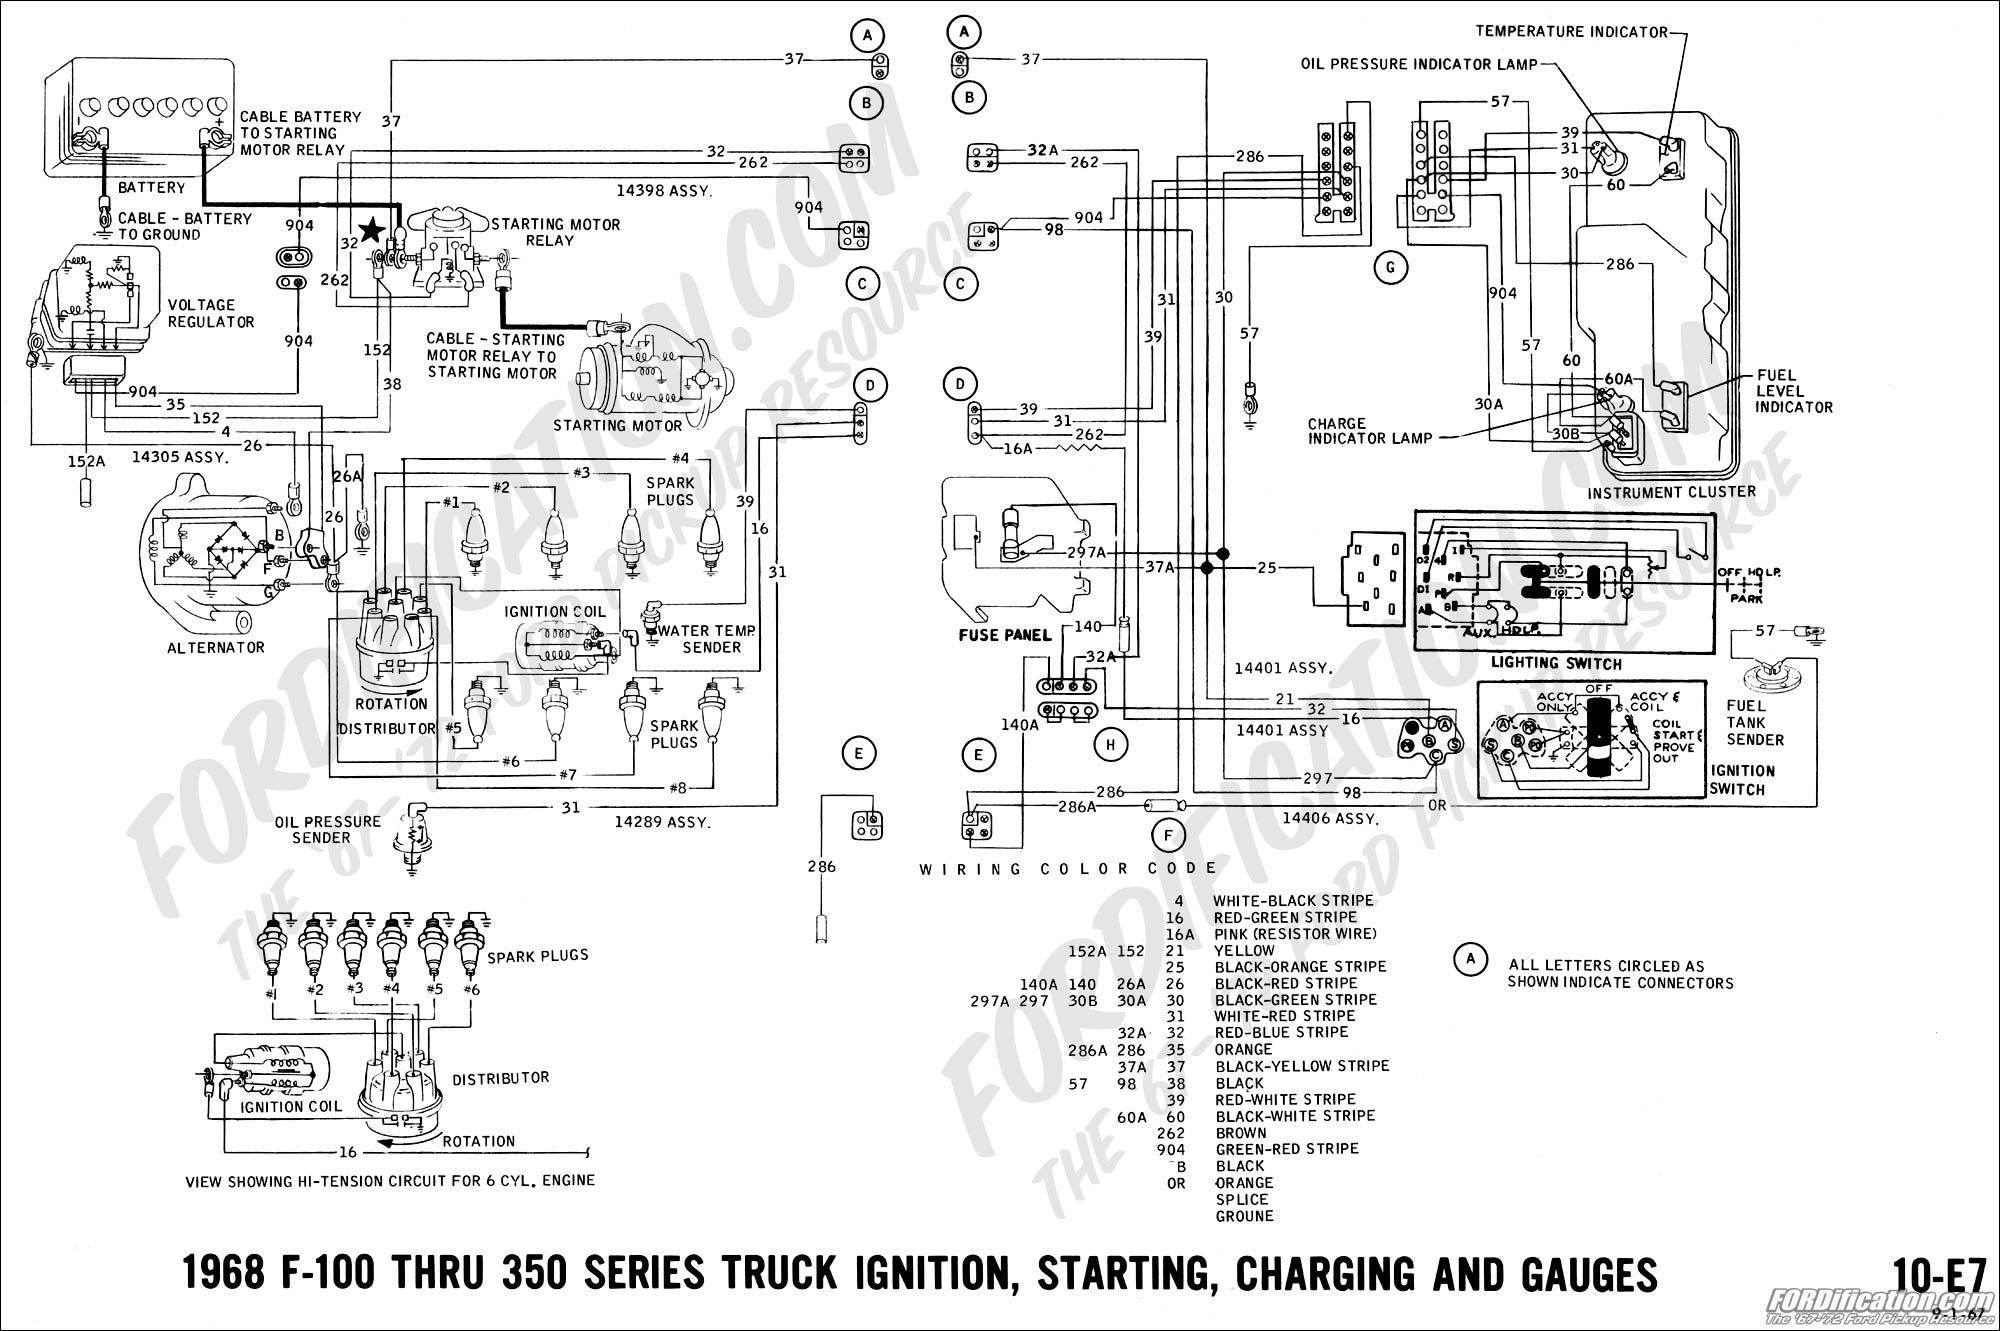 68 09 ford truck technical drawings and schematics section h wiring  at mifinder.co